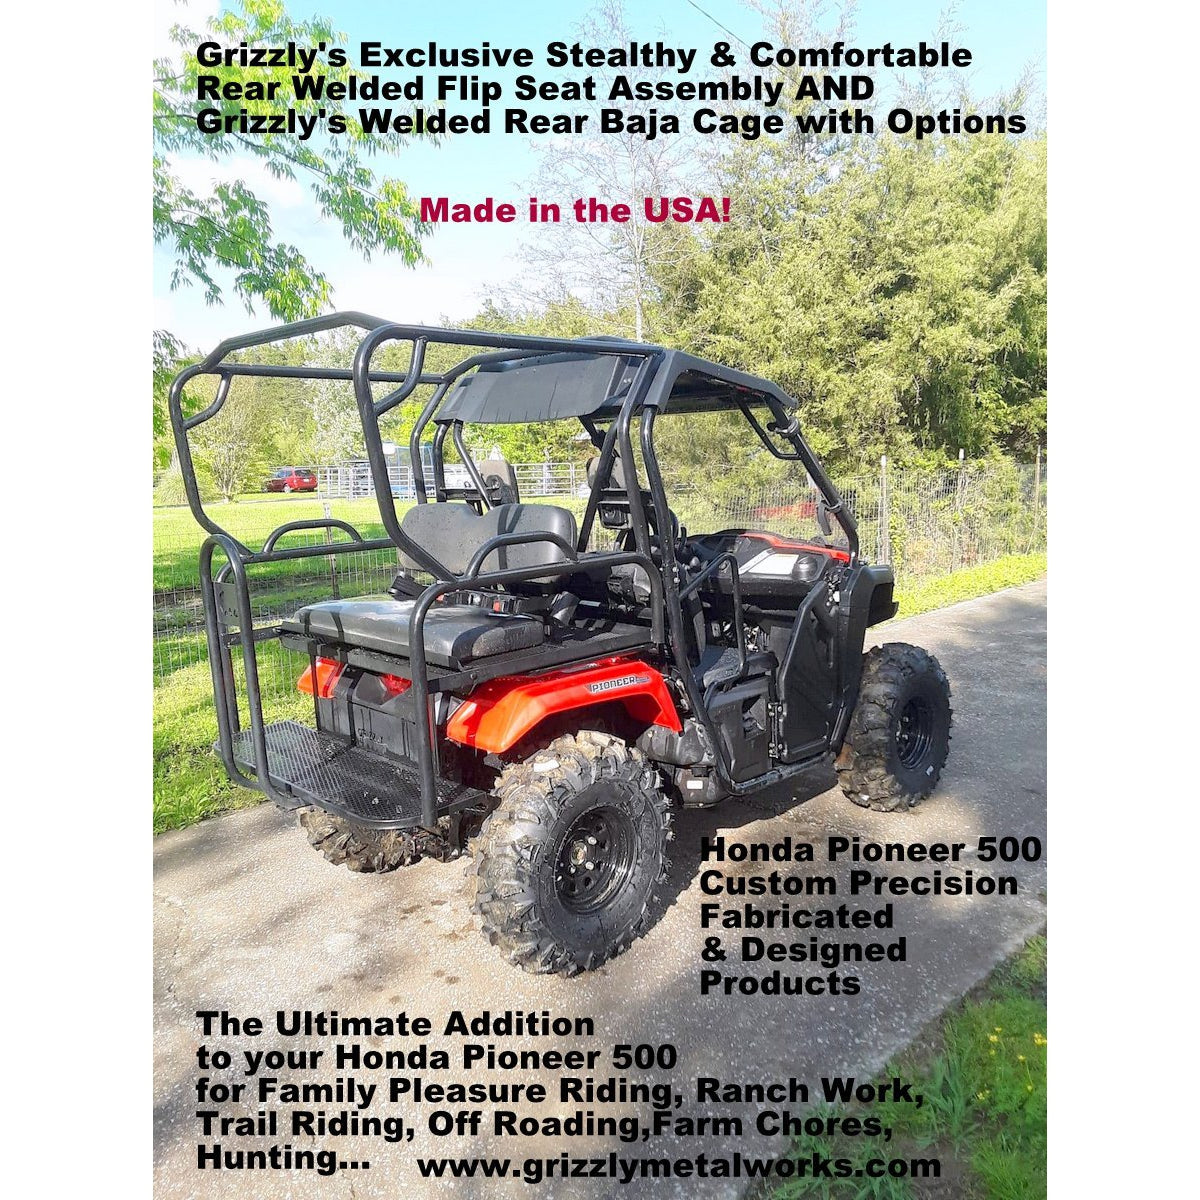 Honda Pioneer 500 Rear Welded Flip Seat Assembly with Welded Baja Cage-Rear Flip Seat-Grizzly Metalworks-Pioneer 500-Grizzly Metalworks